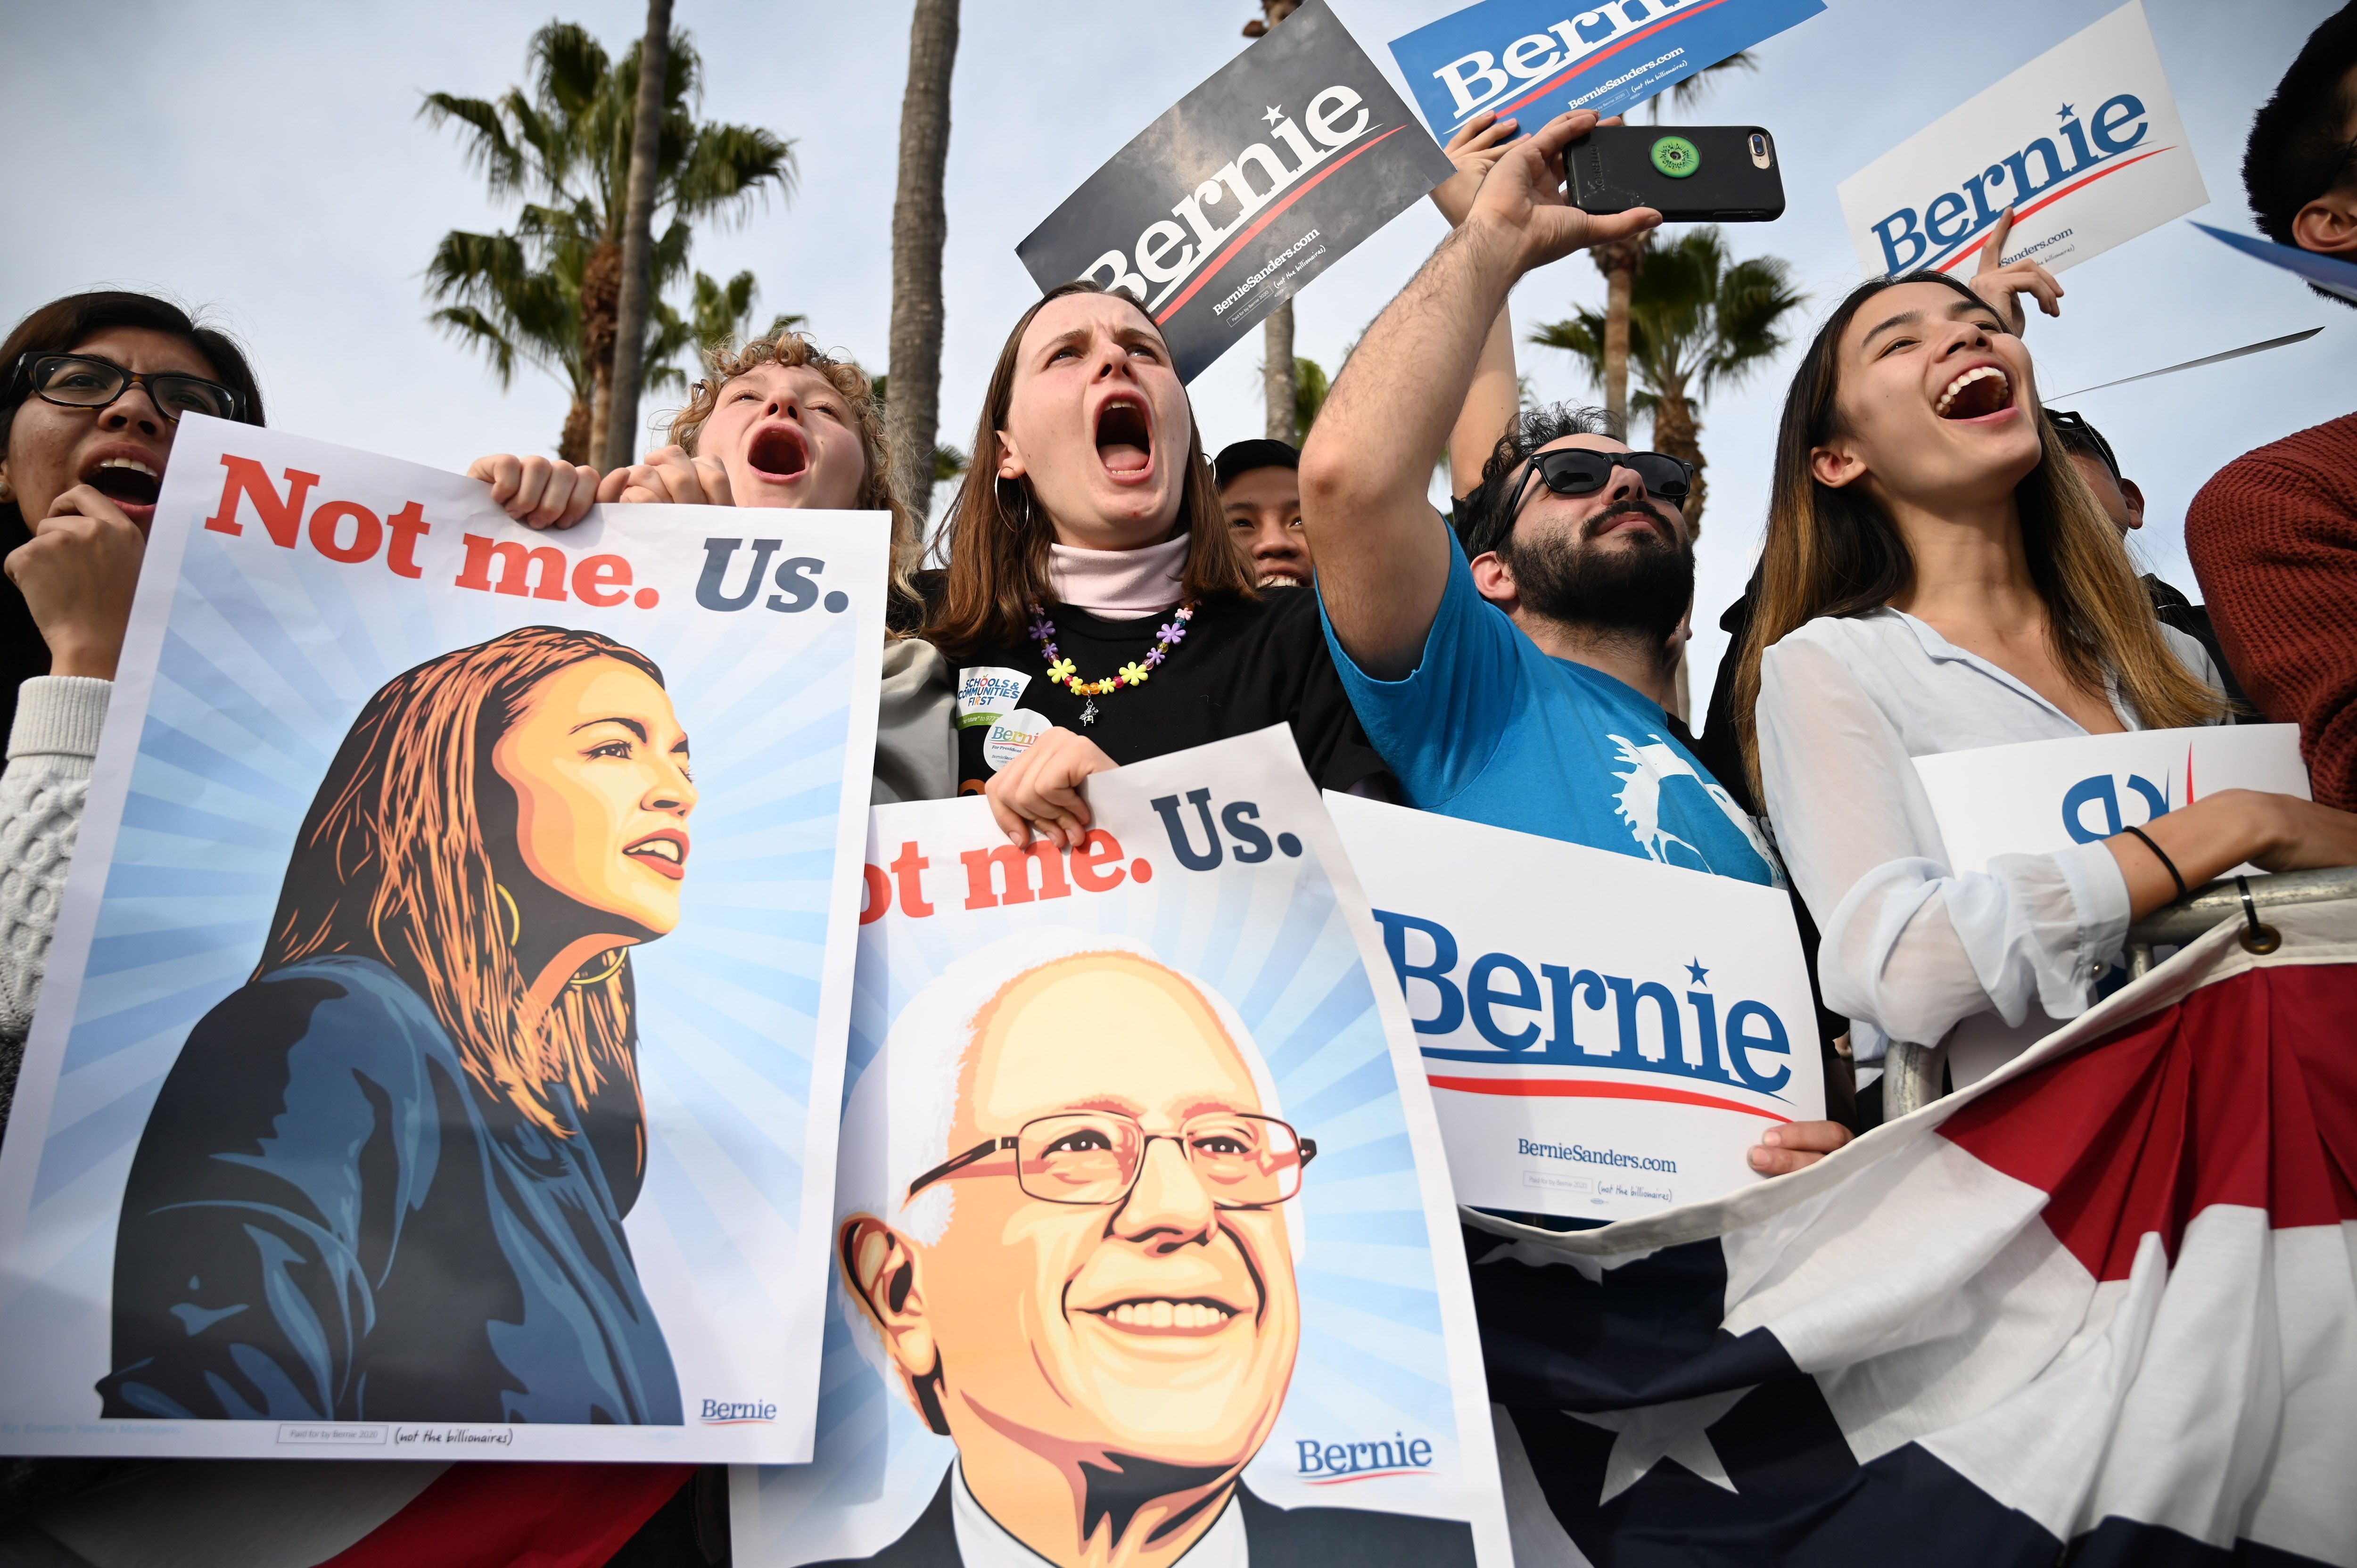 Bernie Sanders supporters at a rally